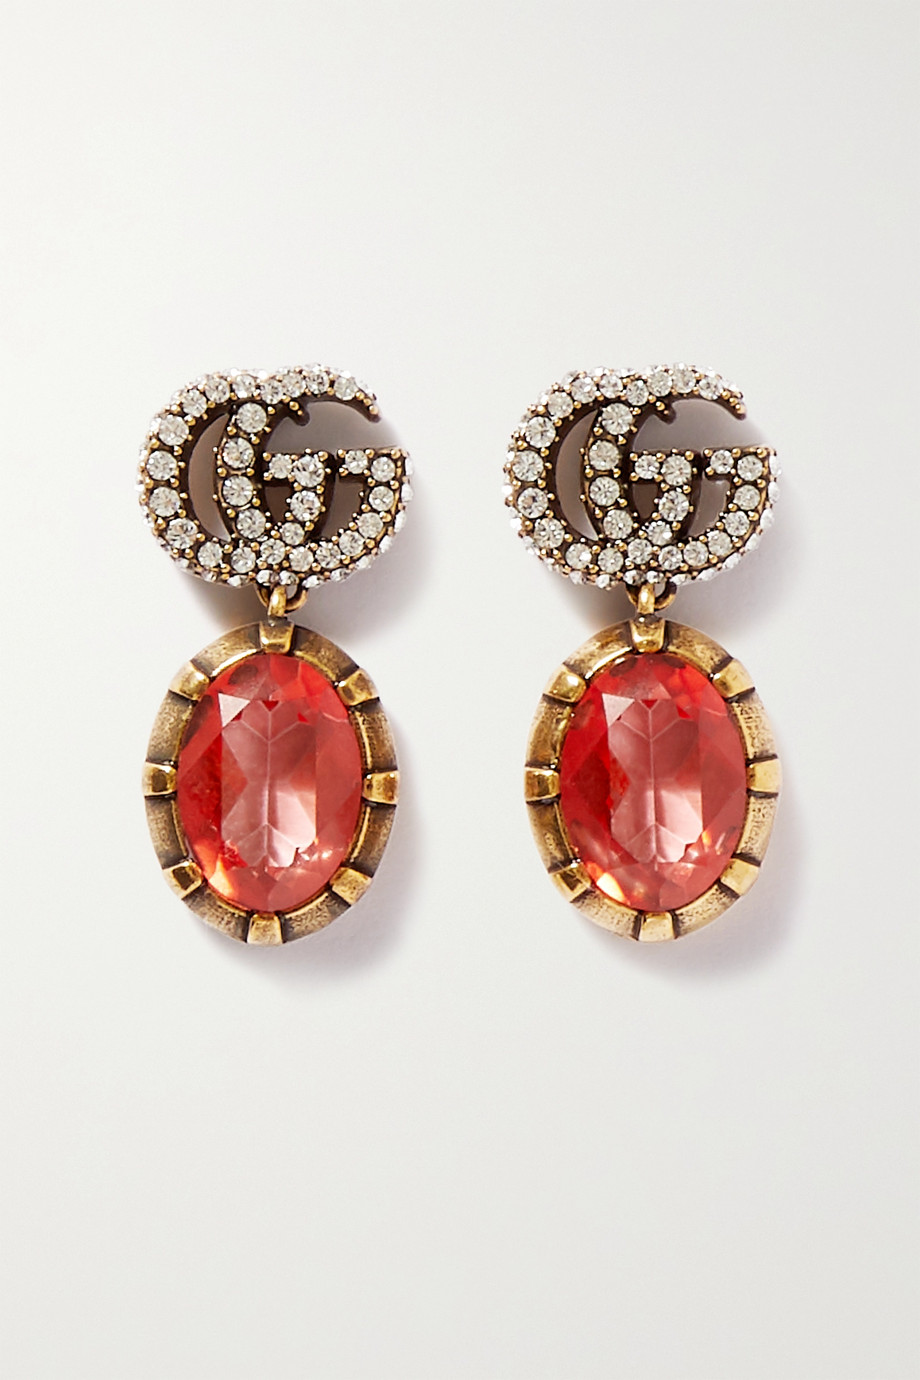 GUCCI Gold-tone crystal earrings